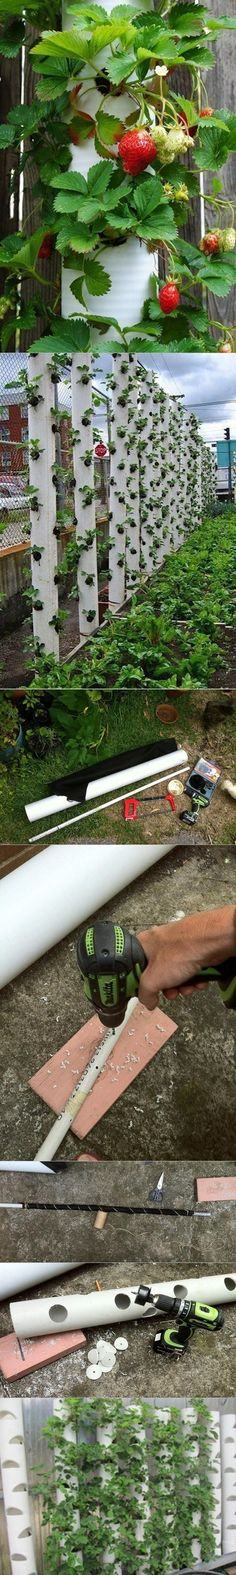 DIY Verticle PVC Pipe Strawberry Planter Tower | www.FabArtDIY.com LIKE Us on Facebook ==> https://www.facebook.com/FabArtDIY